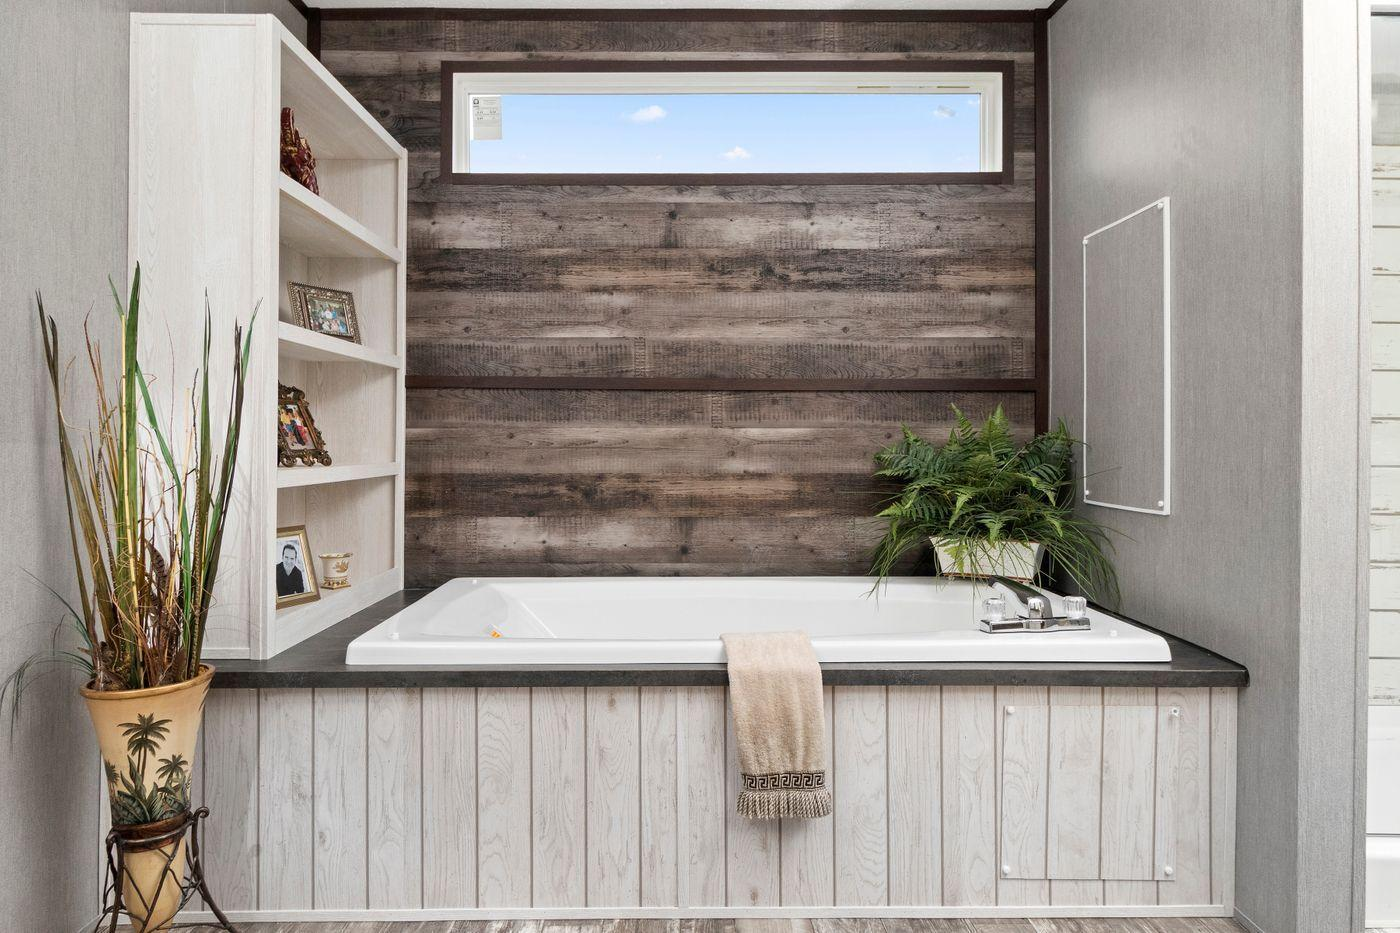 The Seaside Bathroom